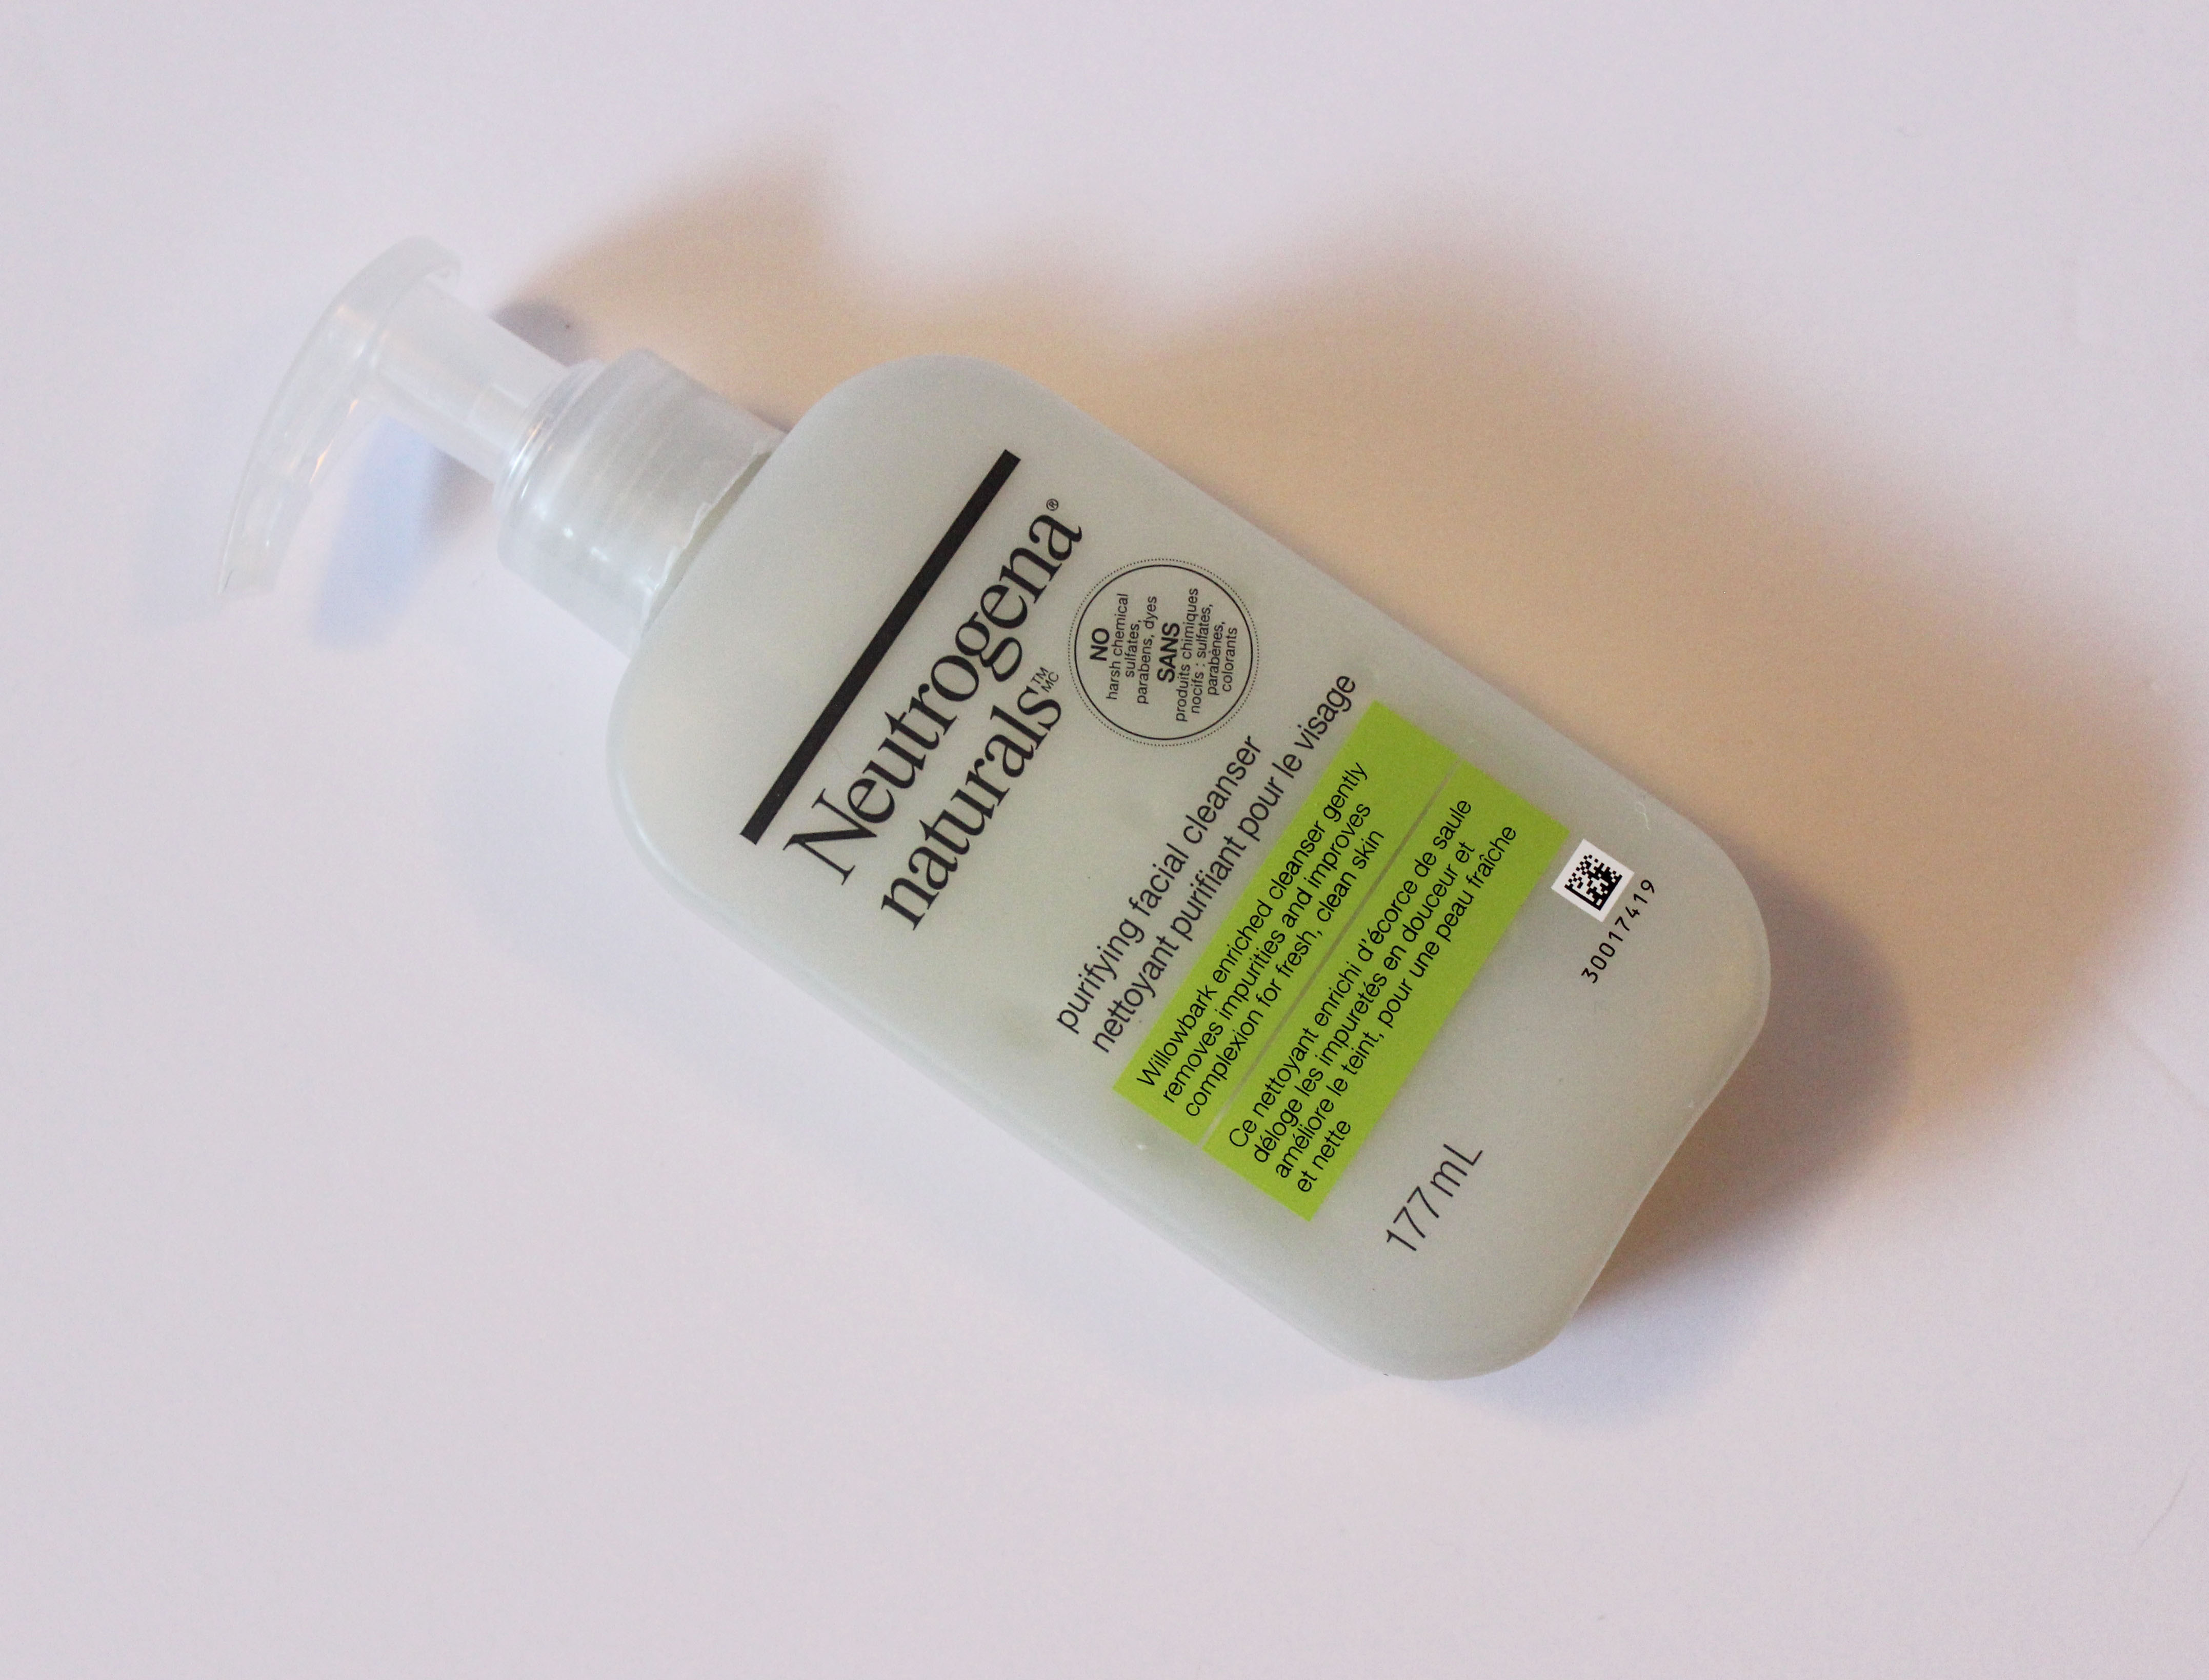 Neutrogena Naturals Face Wash And Makeup Remover Review